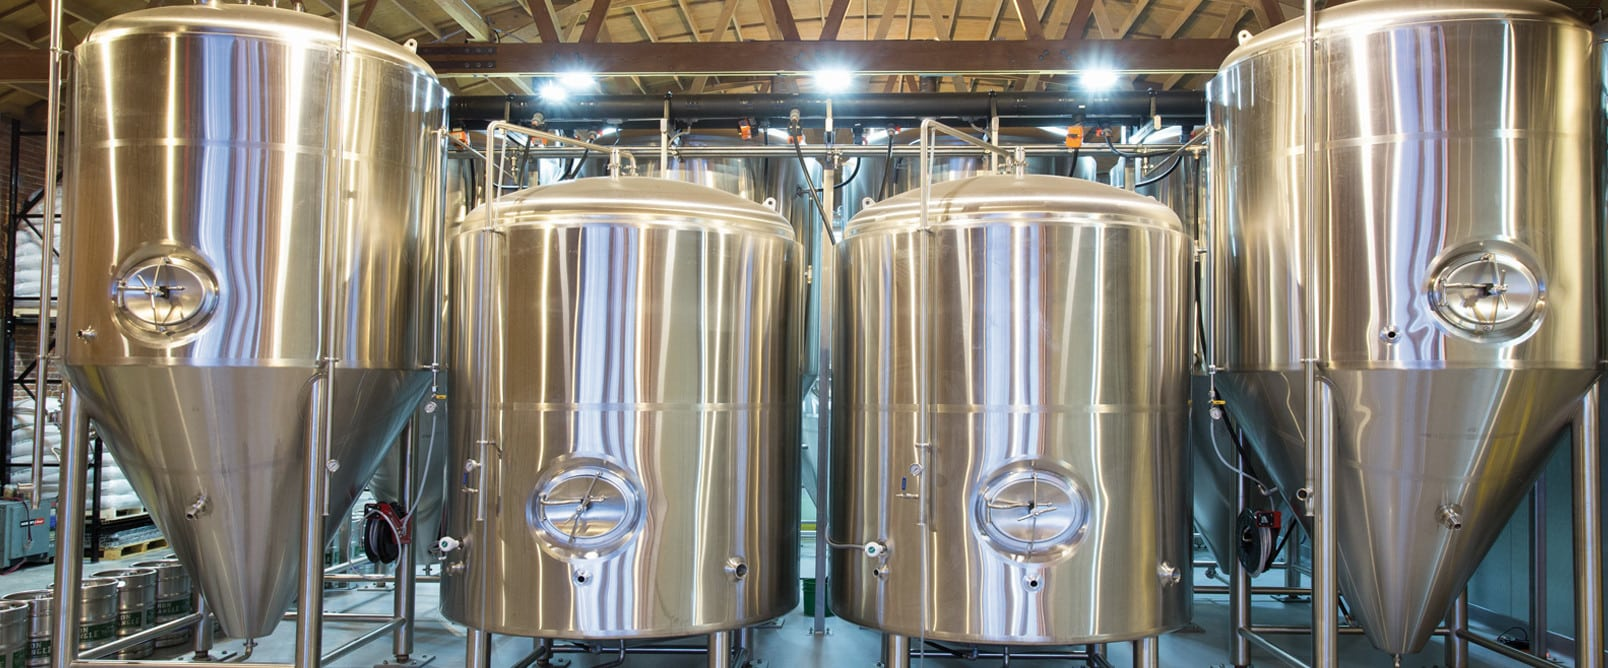 Element to distribute Premier's range of brewing equipment to UK craft brewers